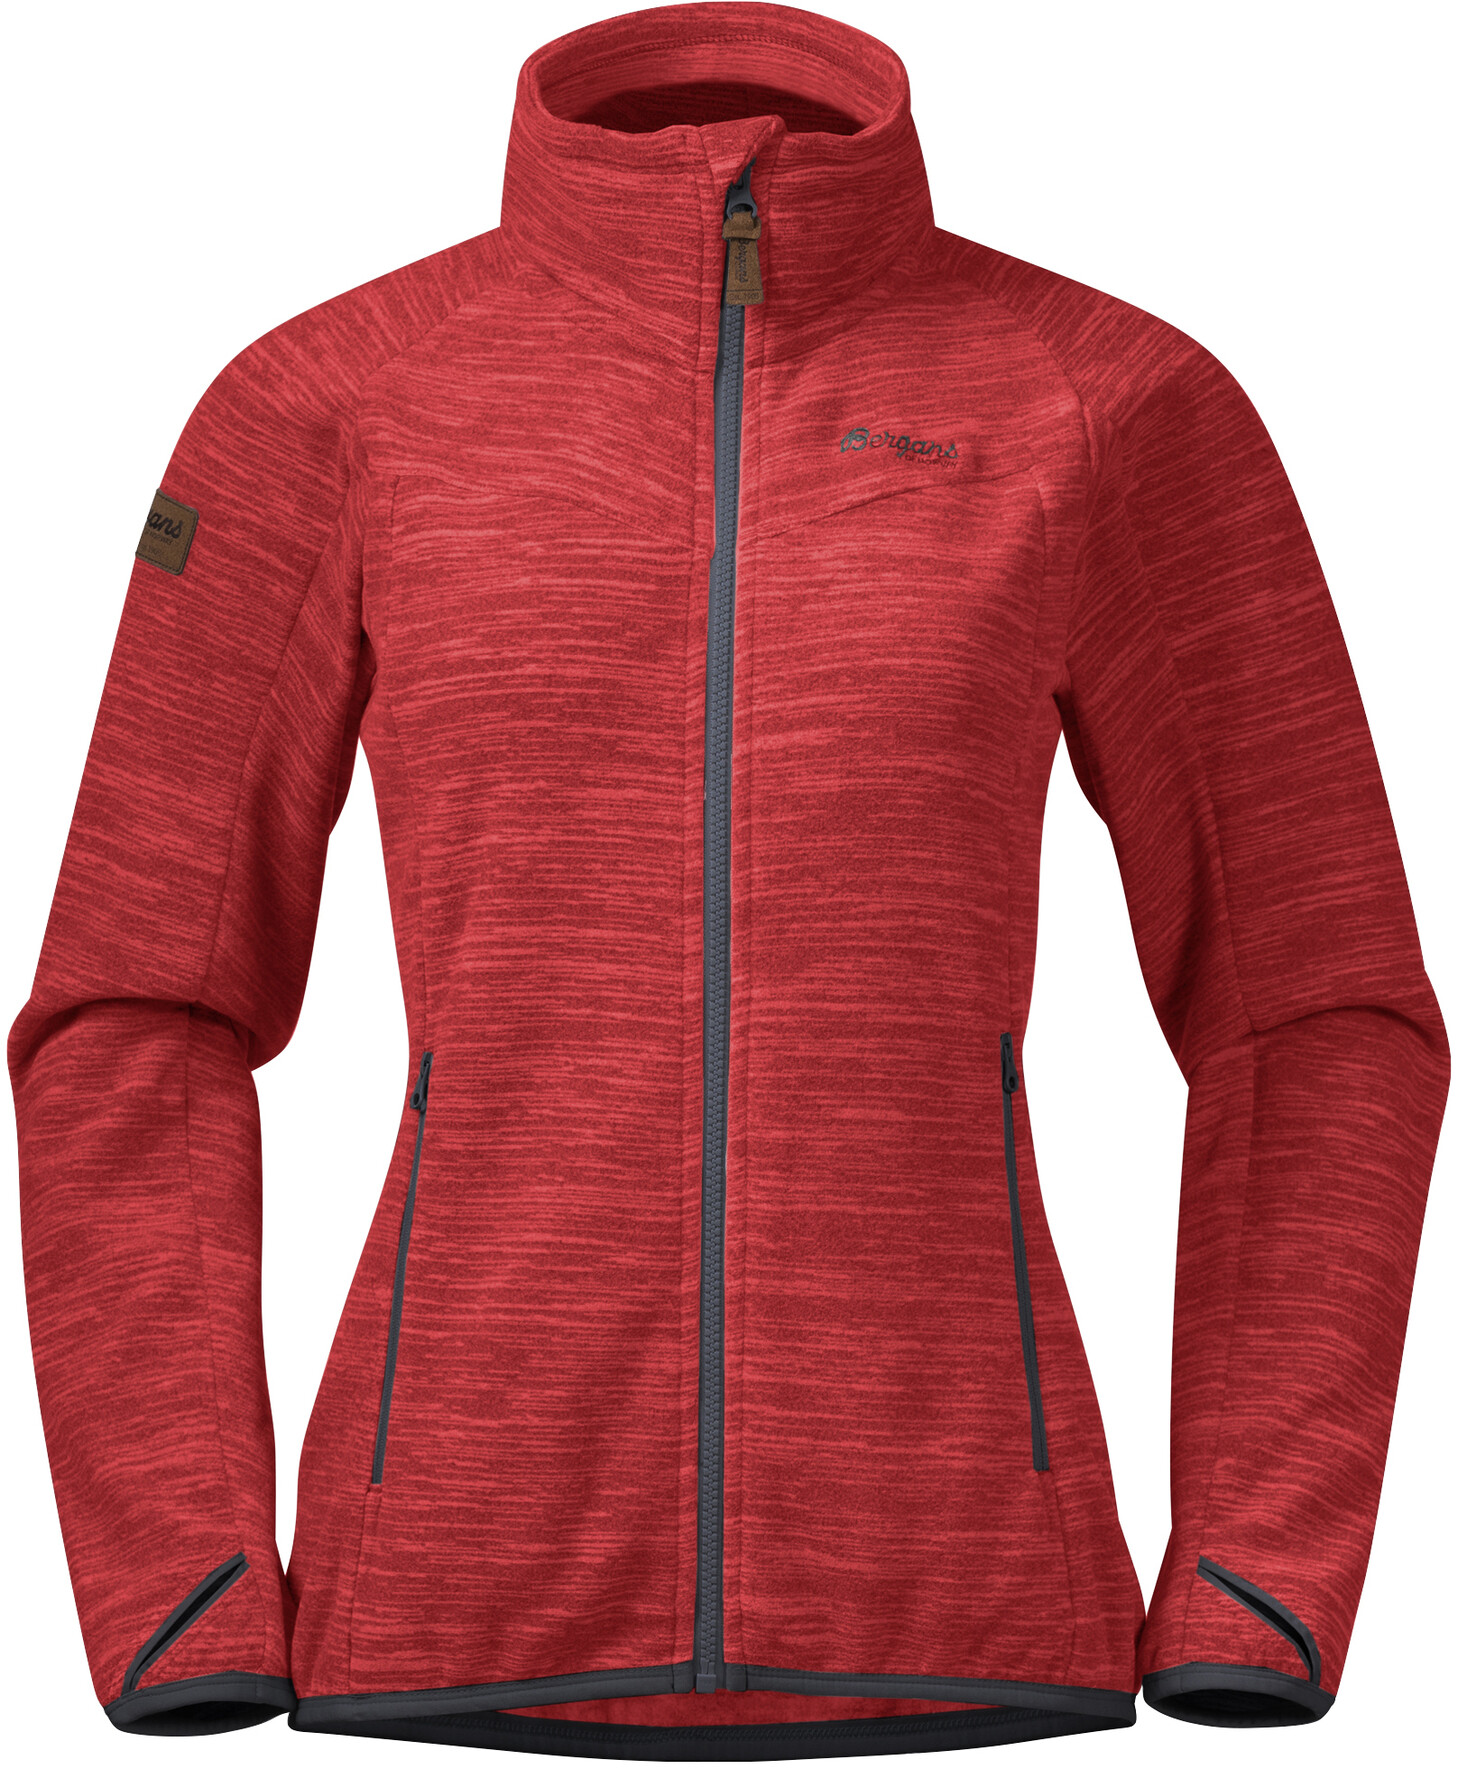 Bergans Hareid NoHood Fleecejacke Damen red melangesolid dark grey